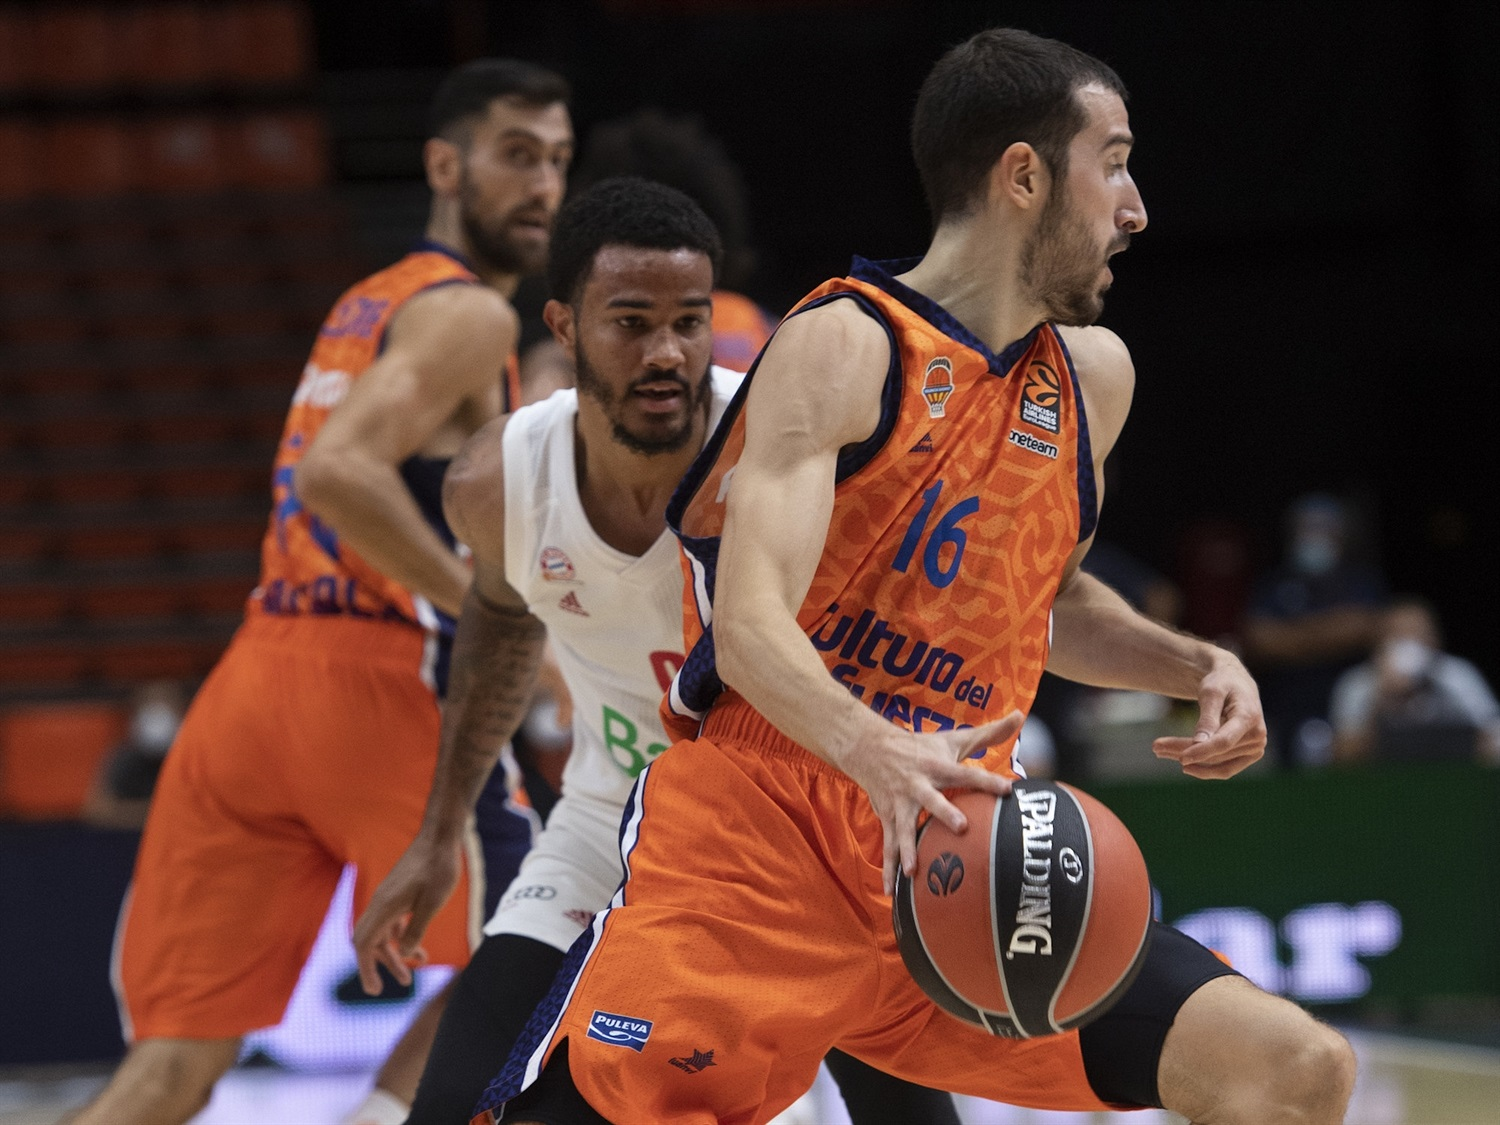 Guillem Vives - Valencia Basket - Preseason Tournament Valencia 2020 - EB20